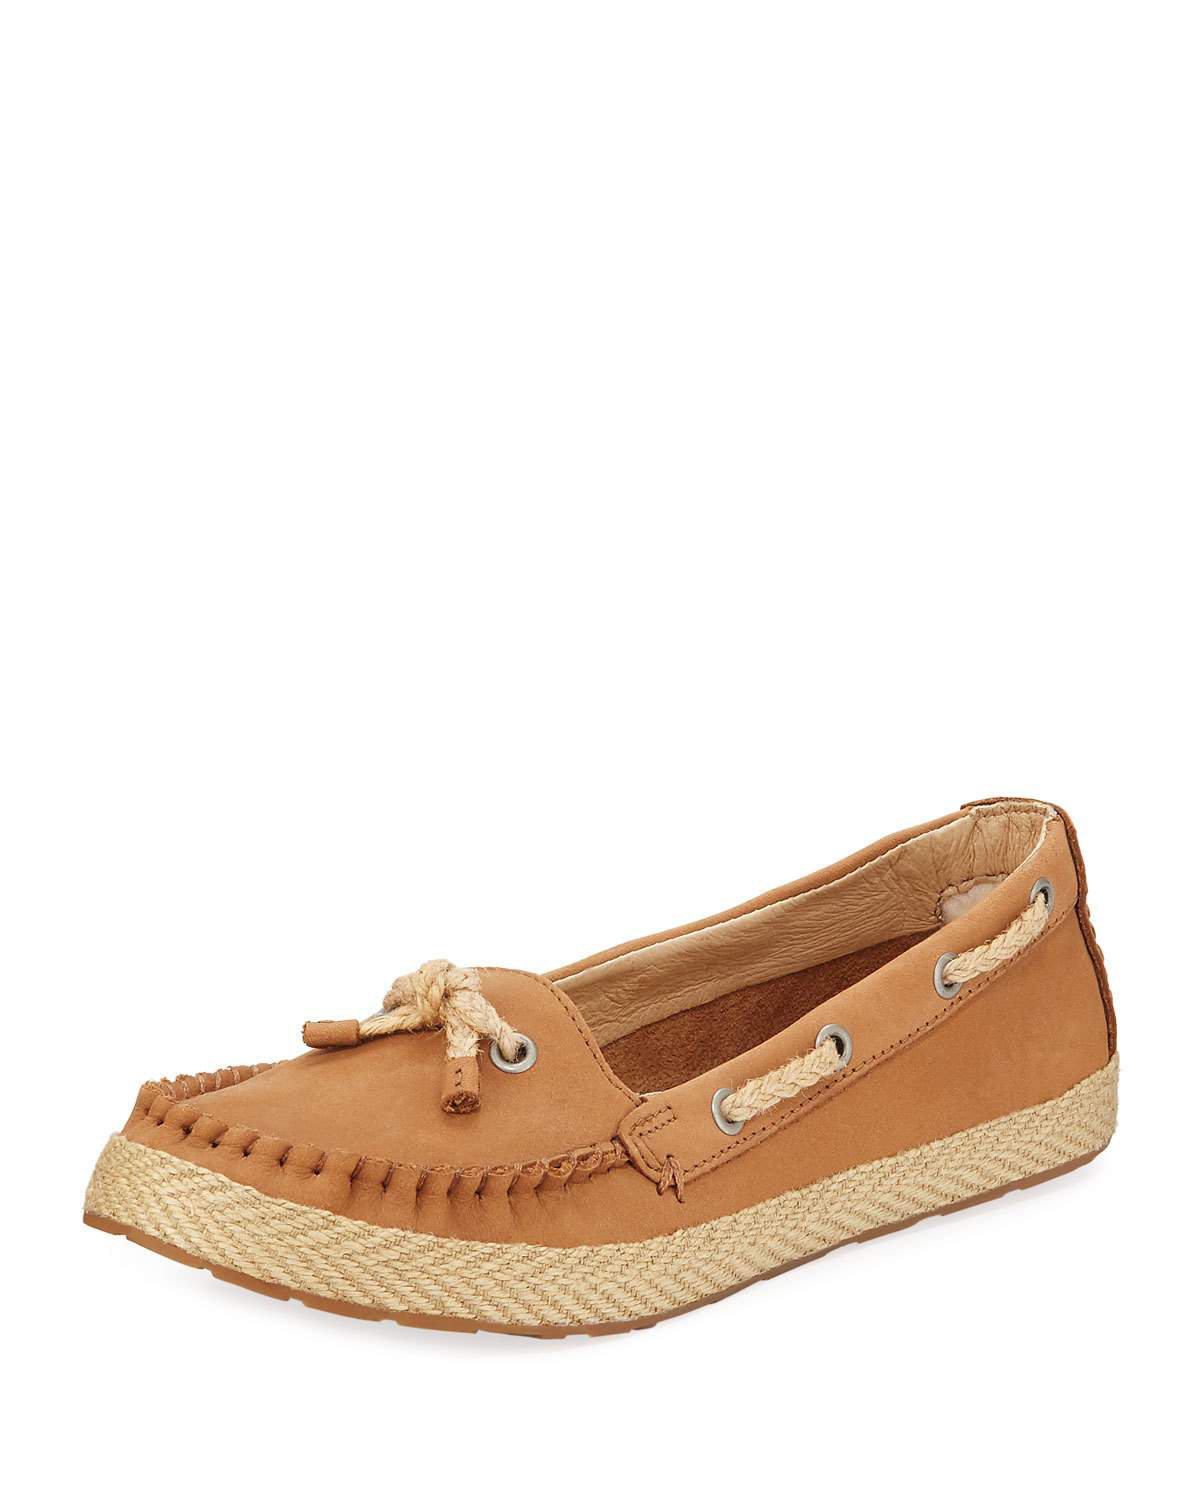 30288ac9b96 Ugg Chivon Leather Flat Loafers